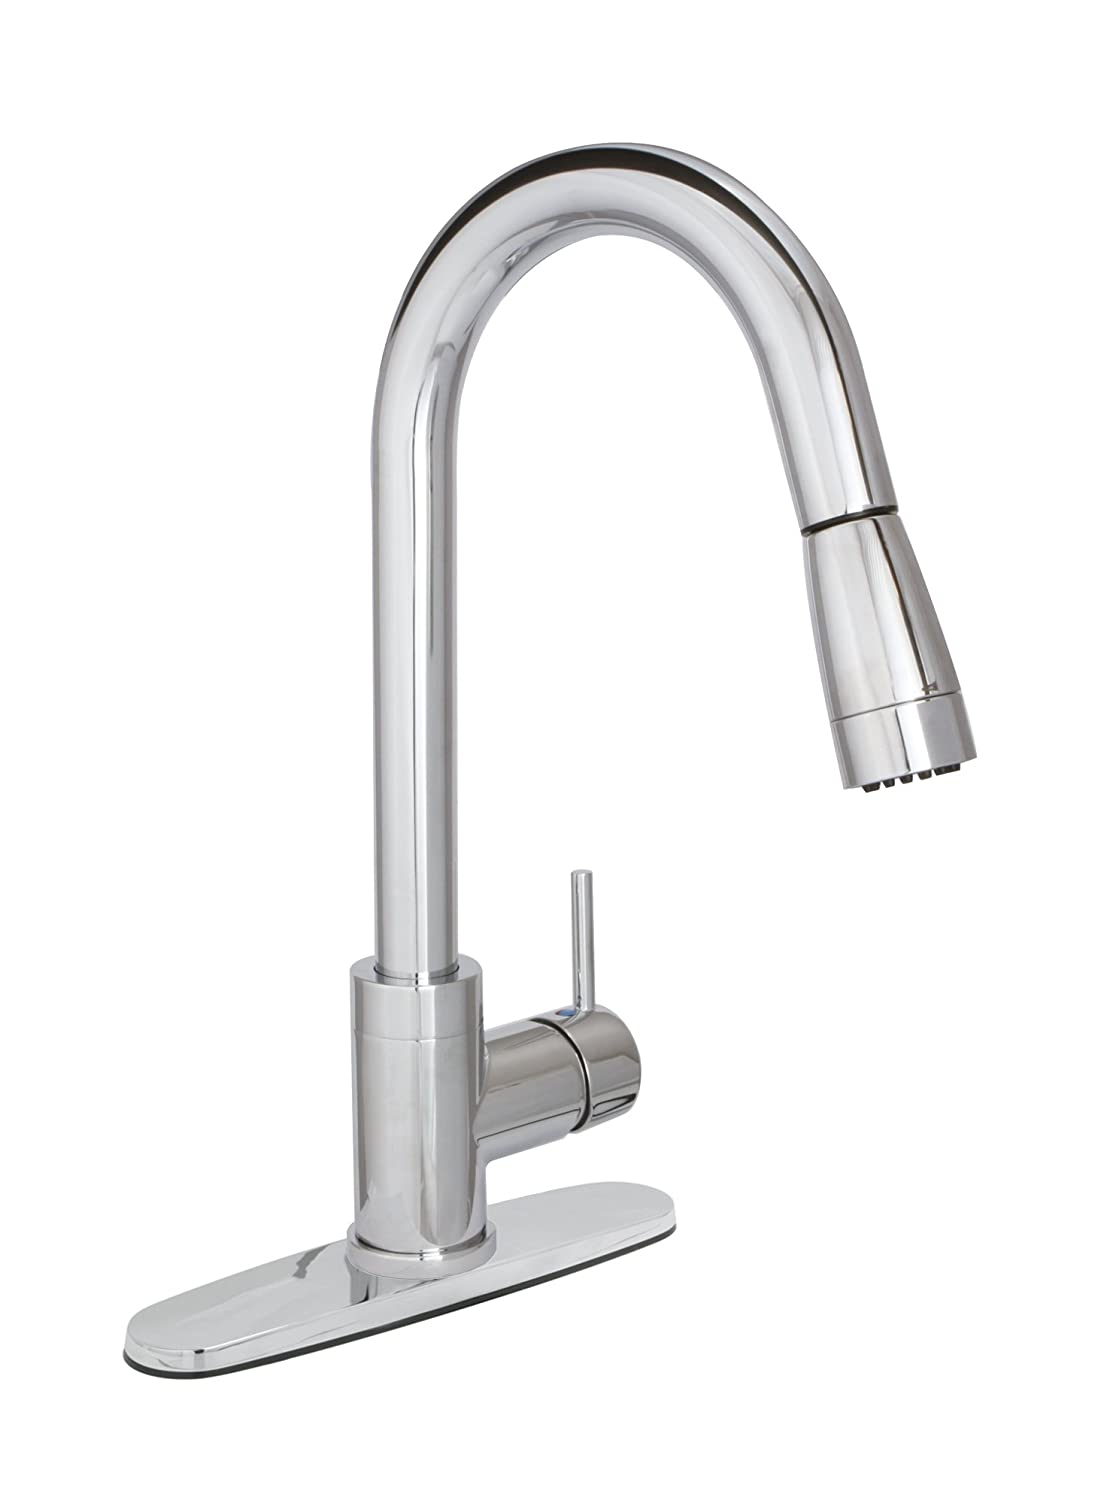 huntington brass pulldown kitchen faucet with sprayer and optional deck plate chrome touch on kitchen sink faucets amazoncom